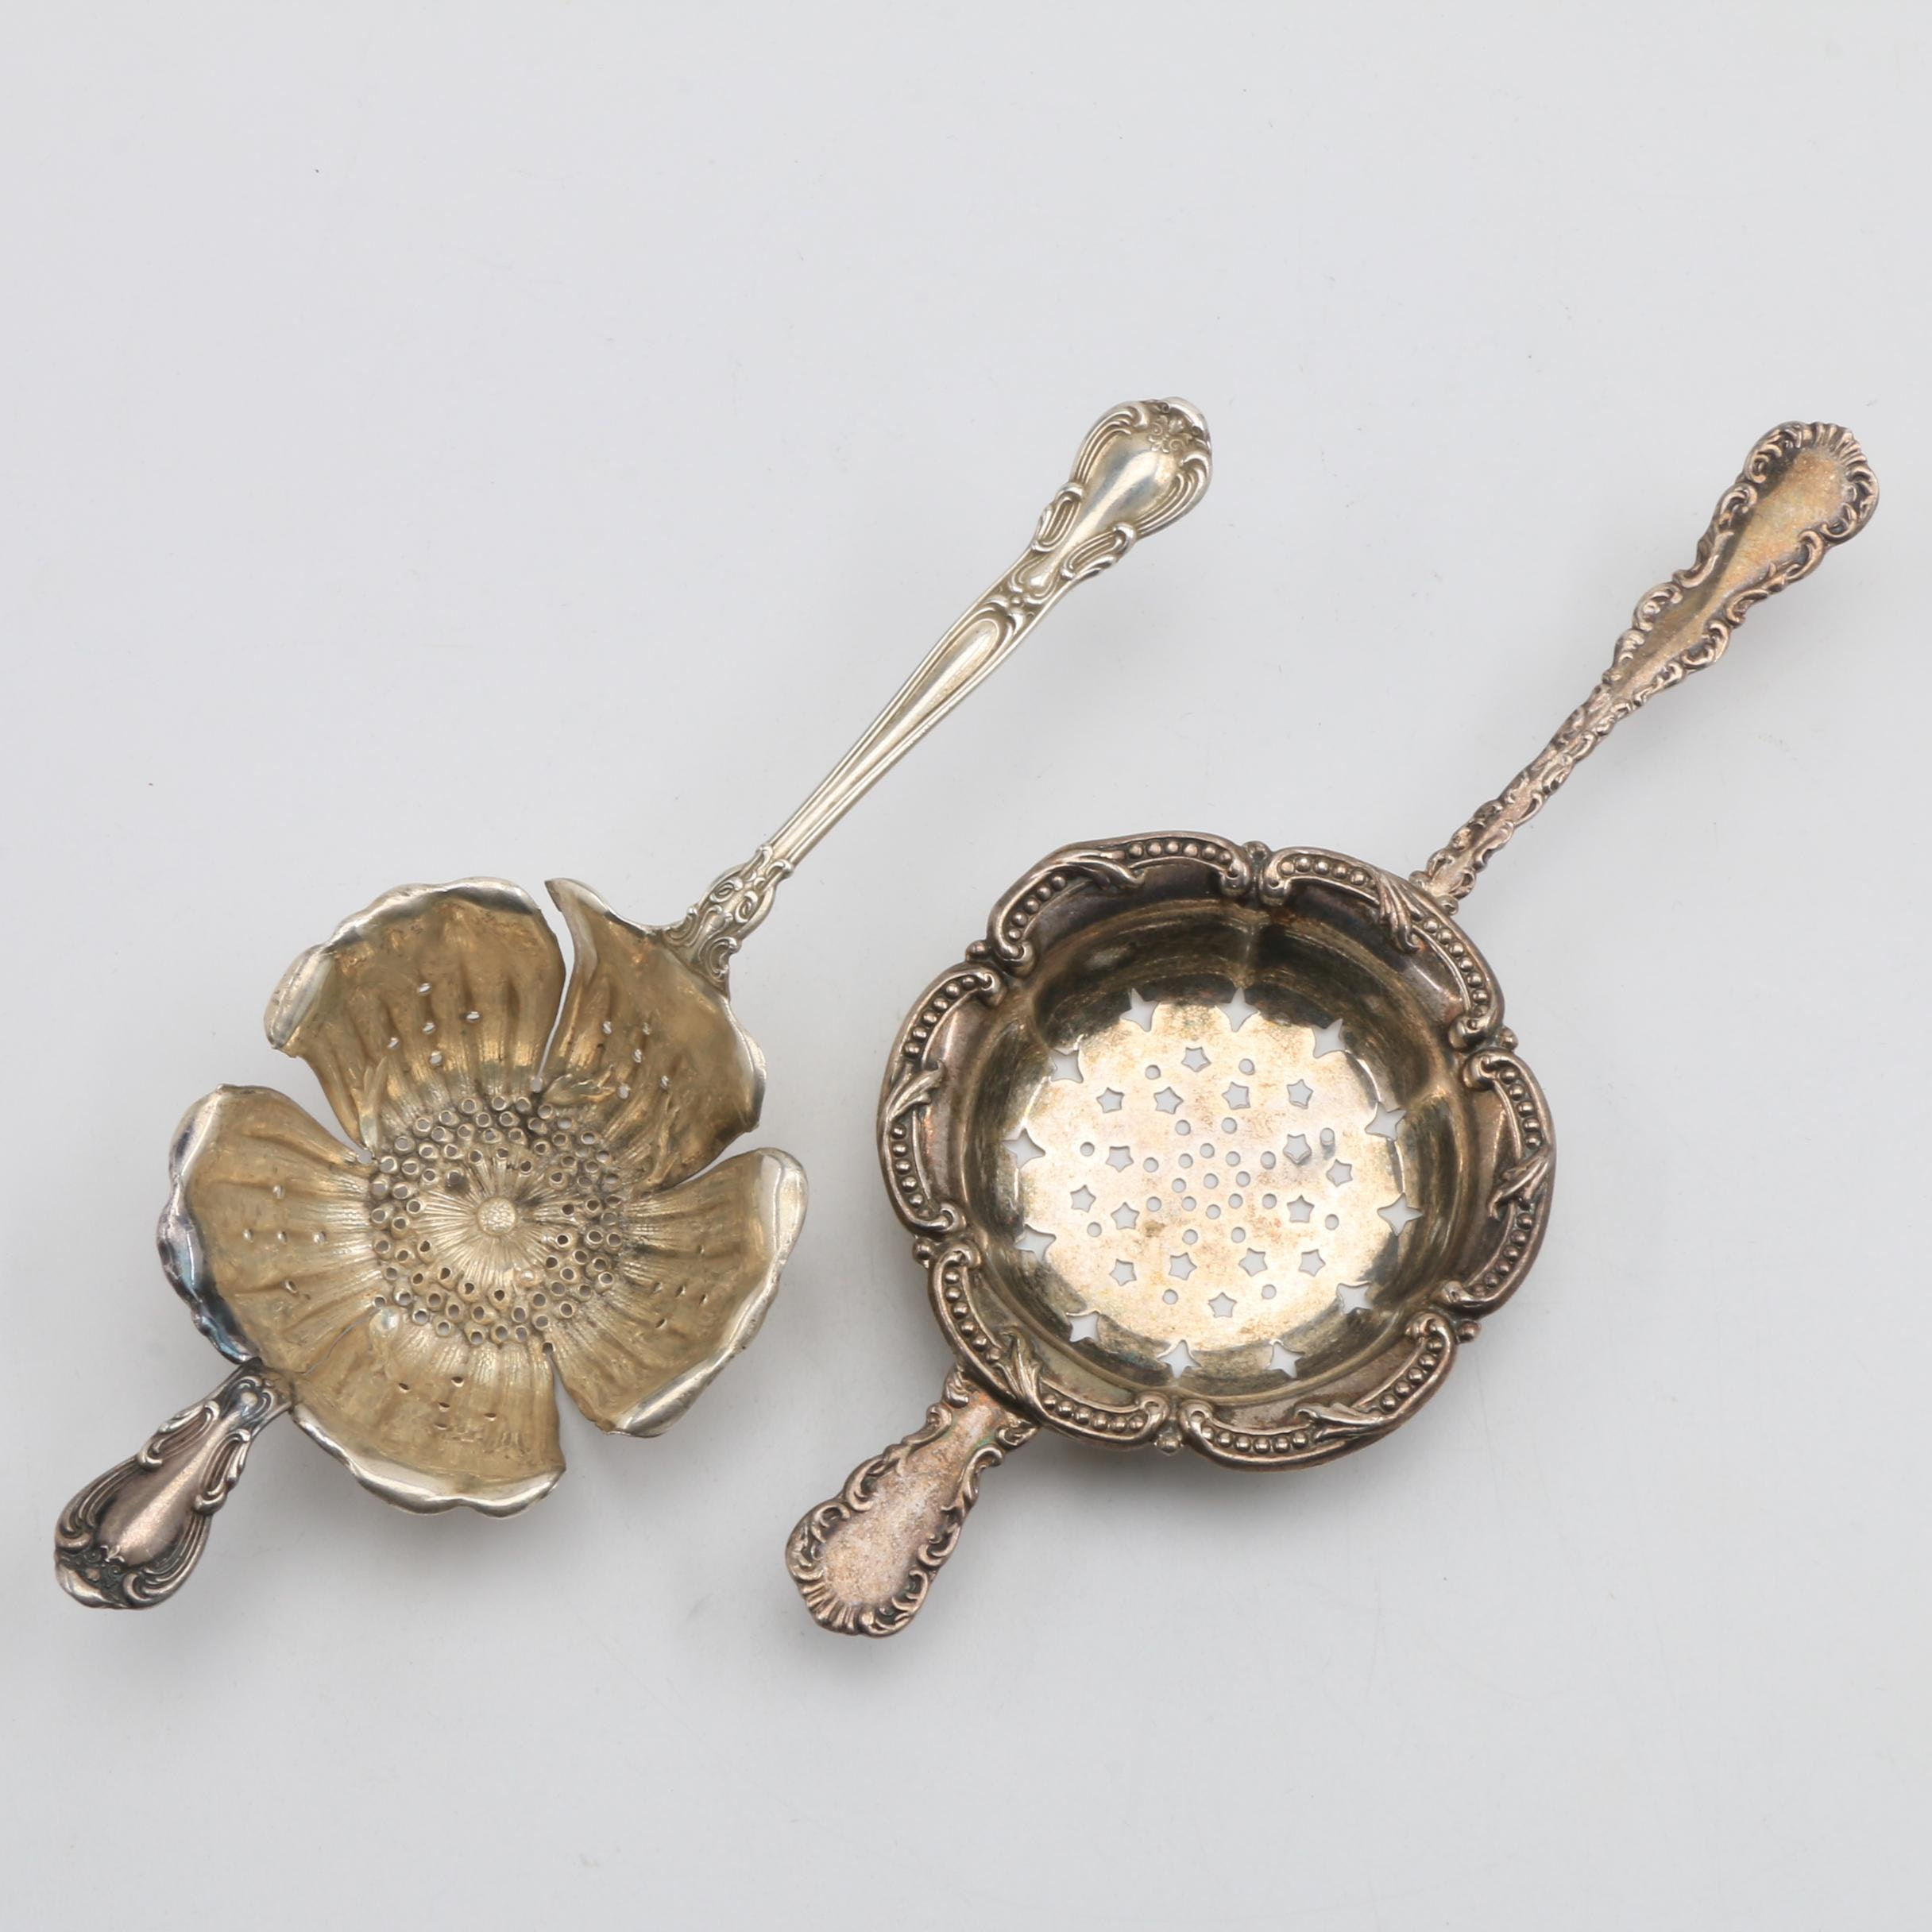 Gorham and Roden Brother Sterling Silver Tea Strainers